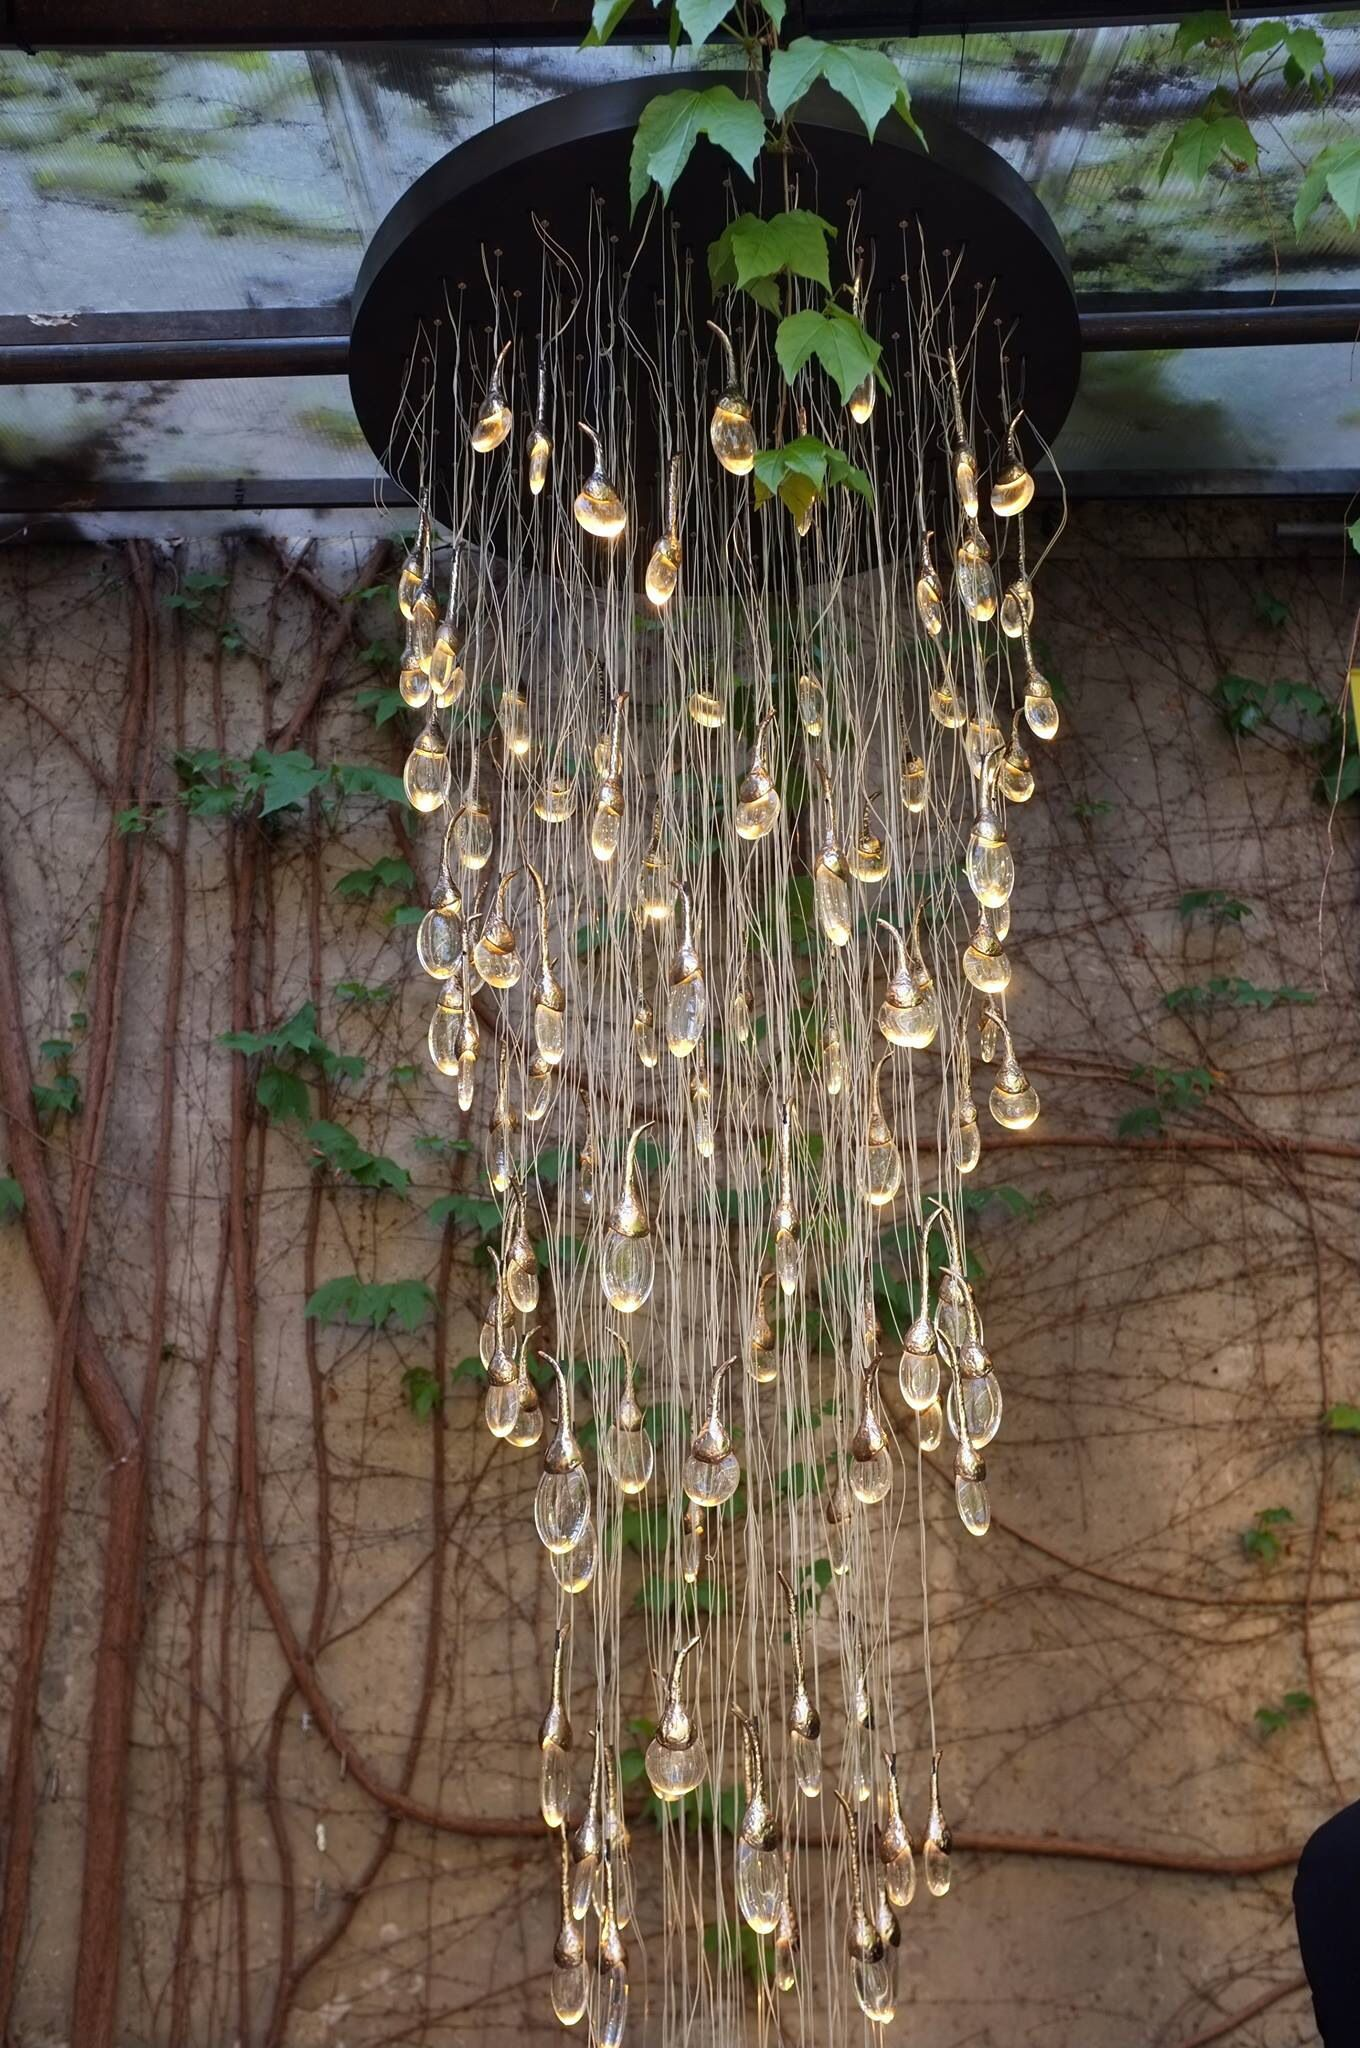 'Seed Cloud' chandelier from British company Ochre